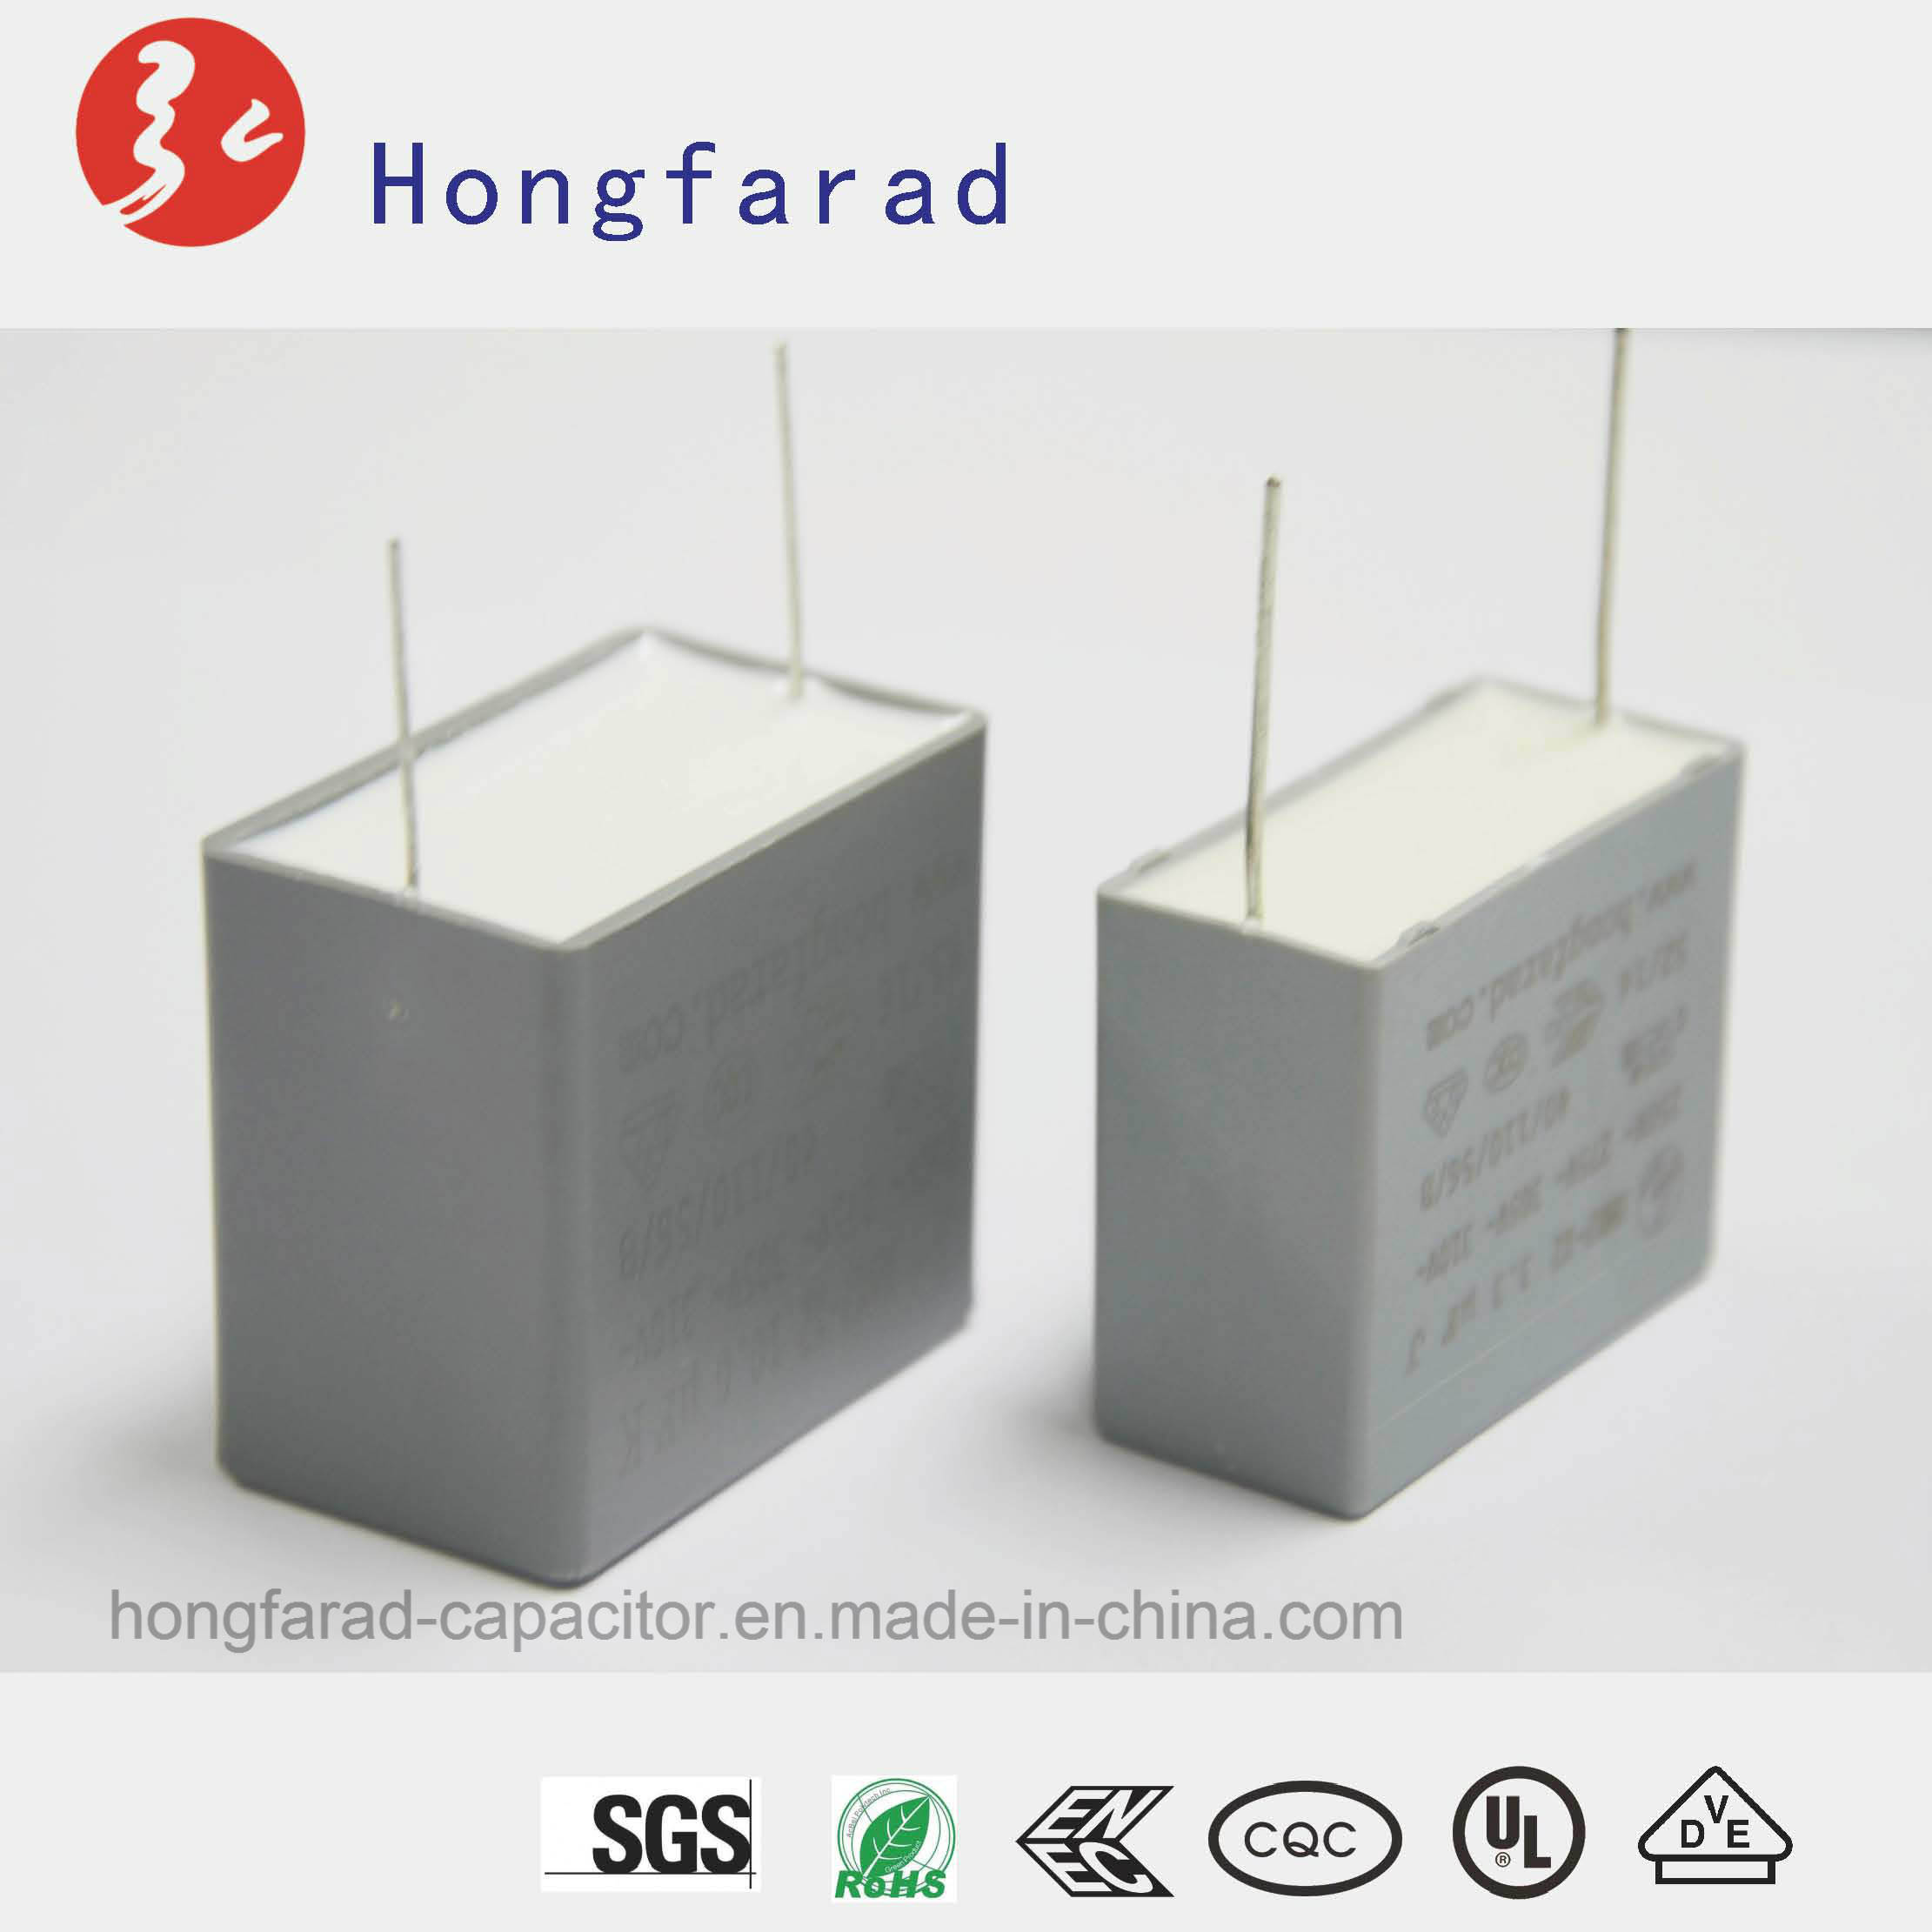 MKP X2 Metallized Polypropylene Film Capacitor with Safety Approvals pictures & photos